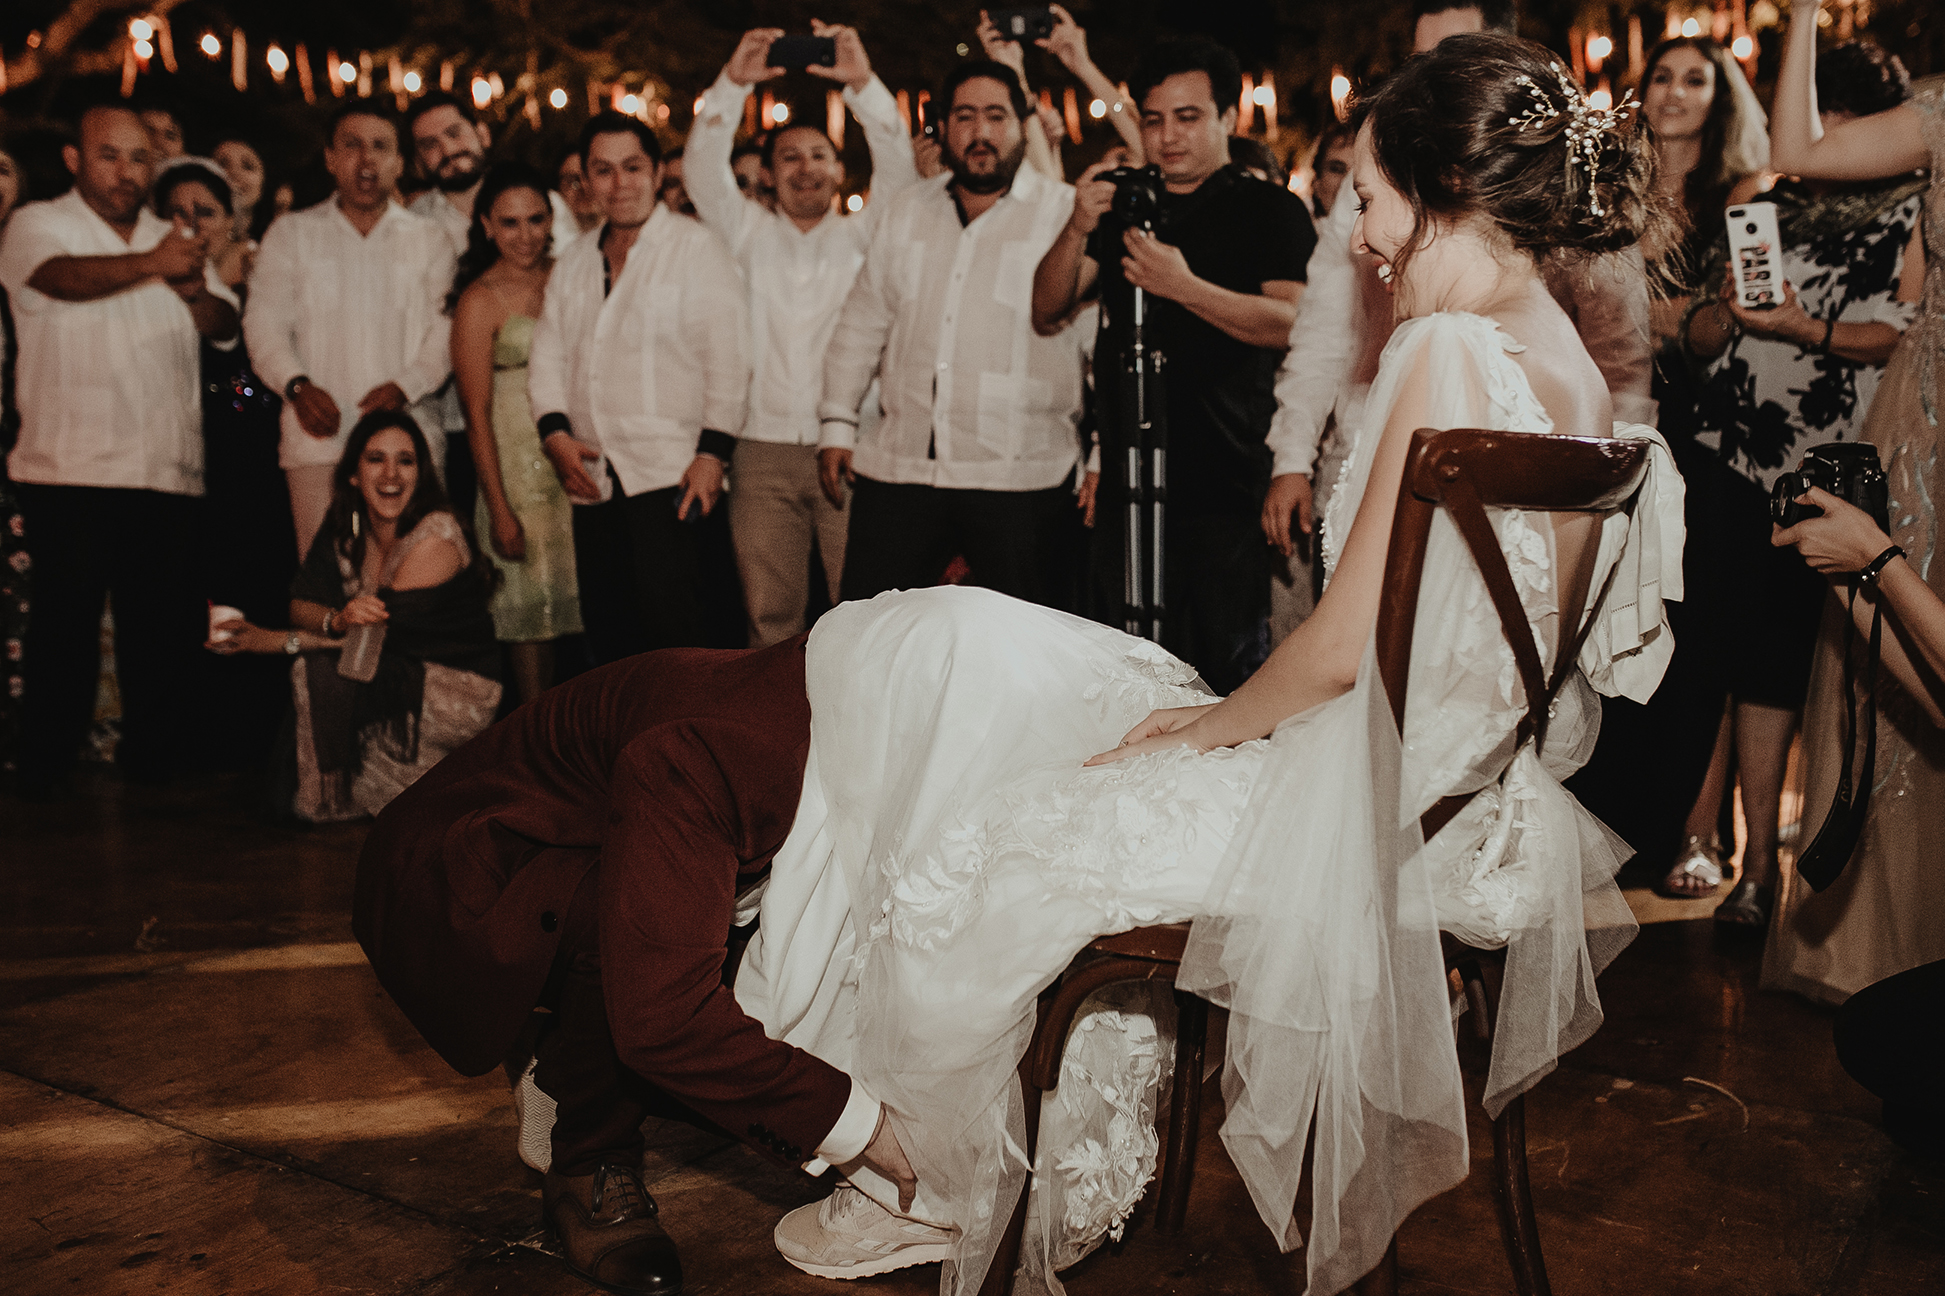 0420p&a_Hacienda__WeddingDestination_Weddingmerida_BodaMexico_FotografoDeBodas_WeddingGay.jpg